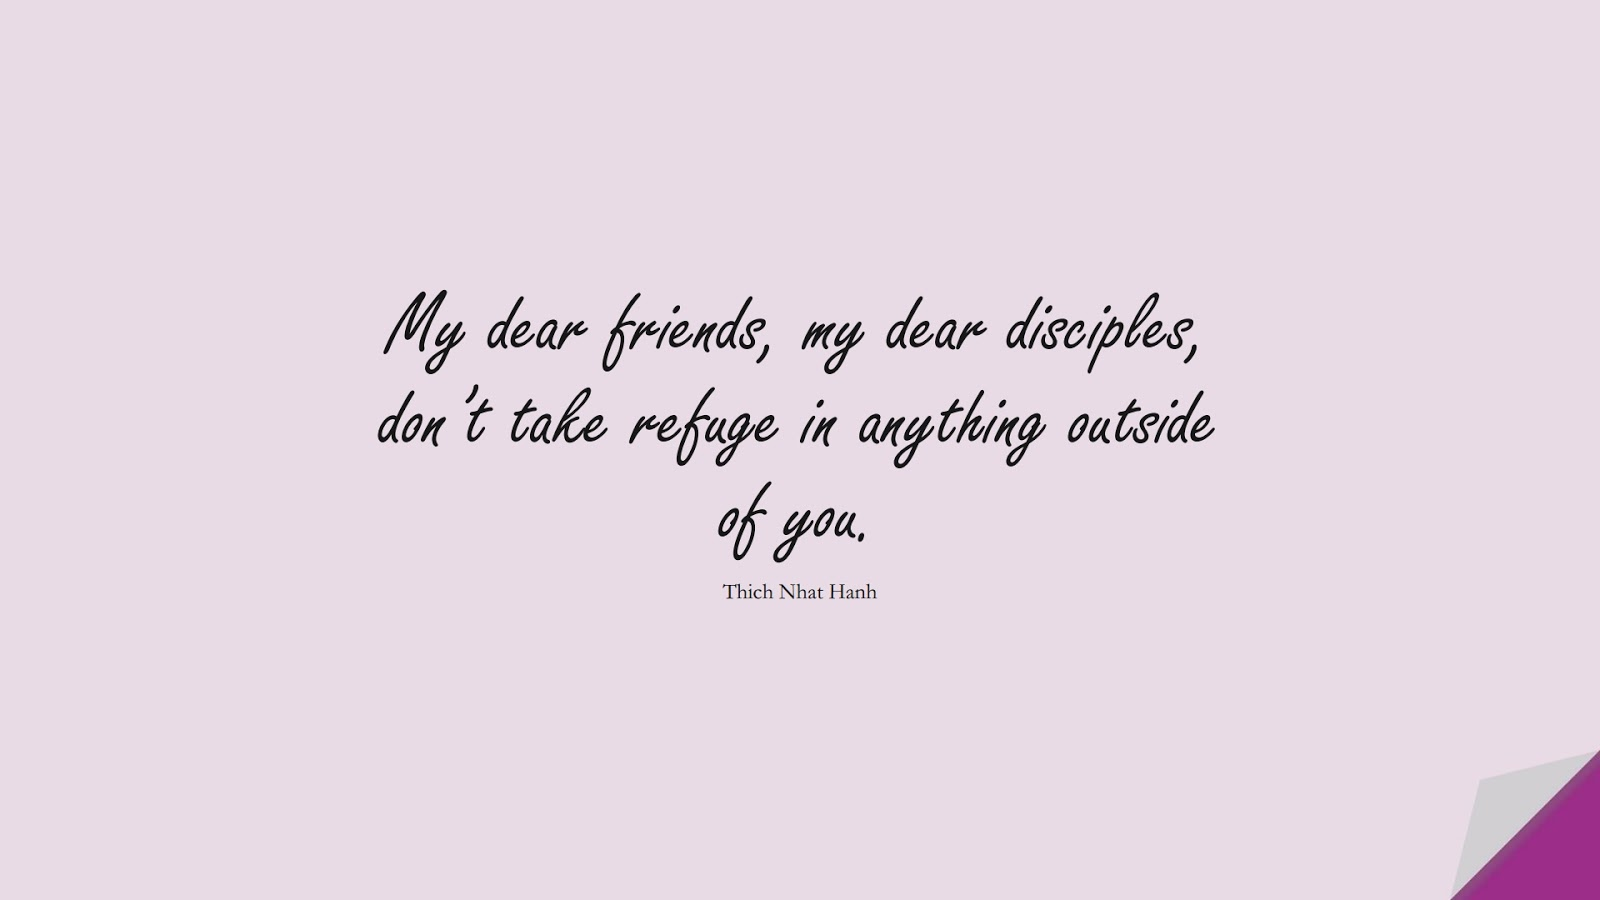 My dear friends, my dear disciples, don't take refuge in anything outside of you. (Thich Nhat Hanh);  #FearQuotes